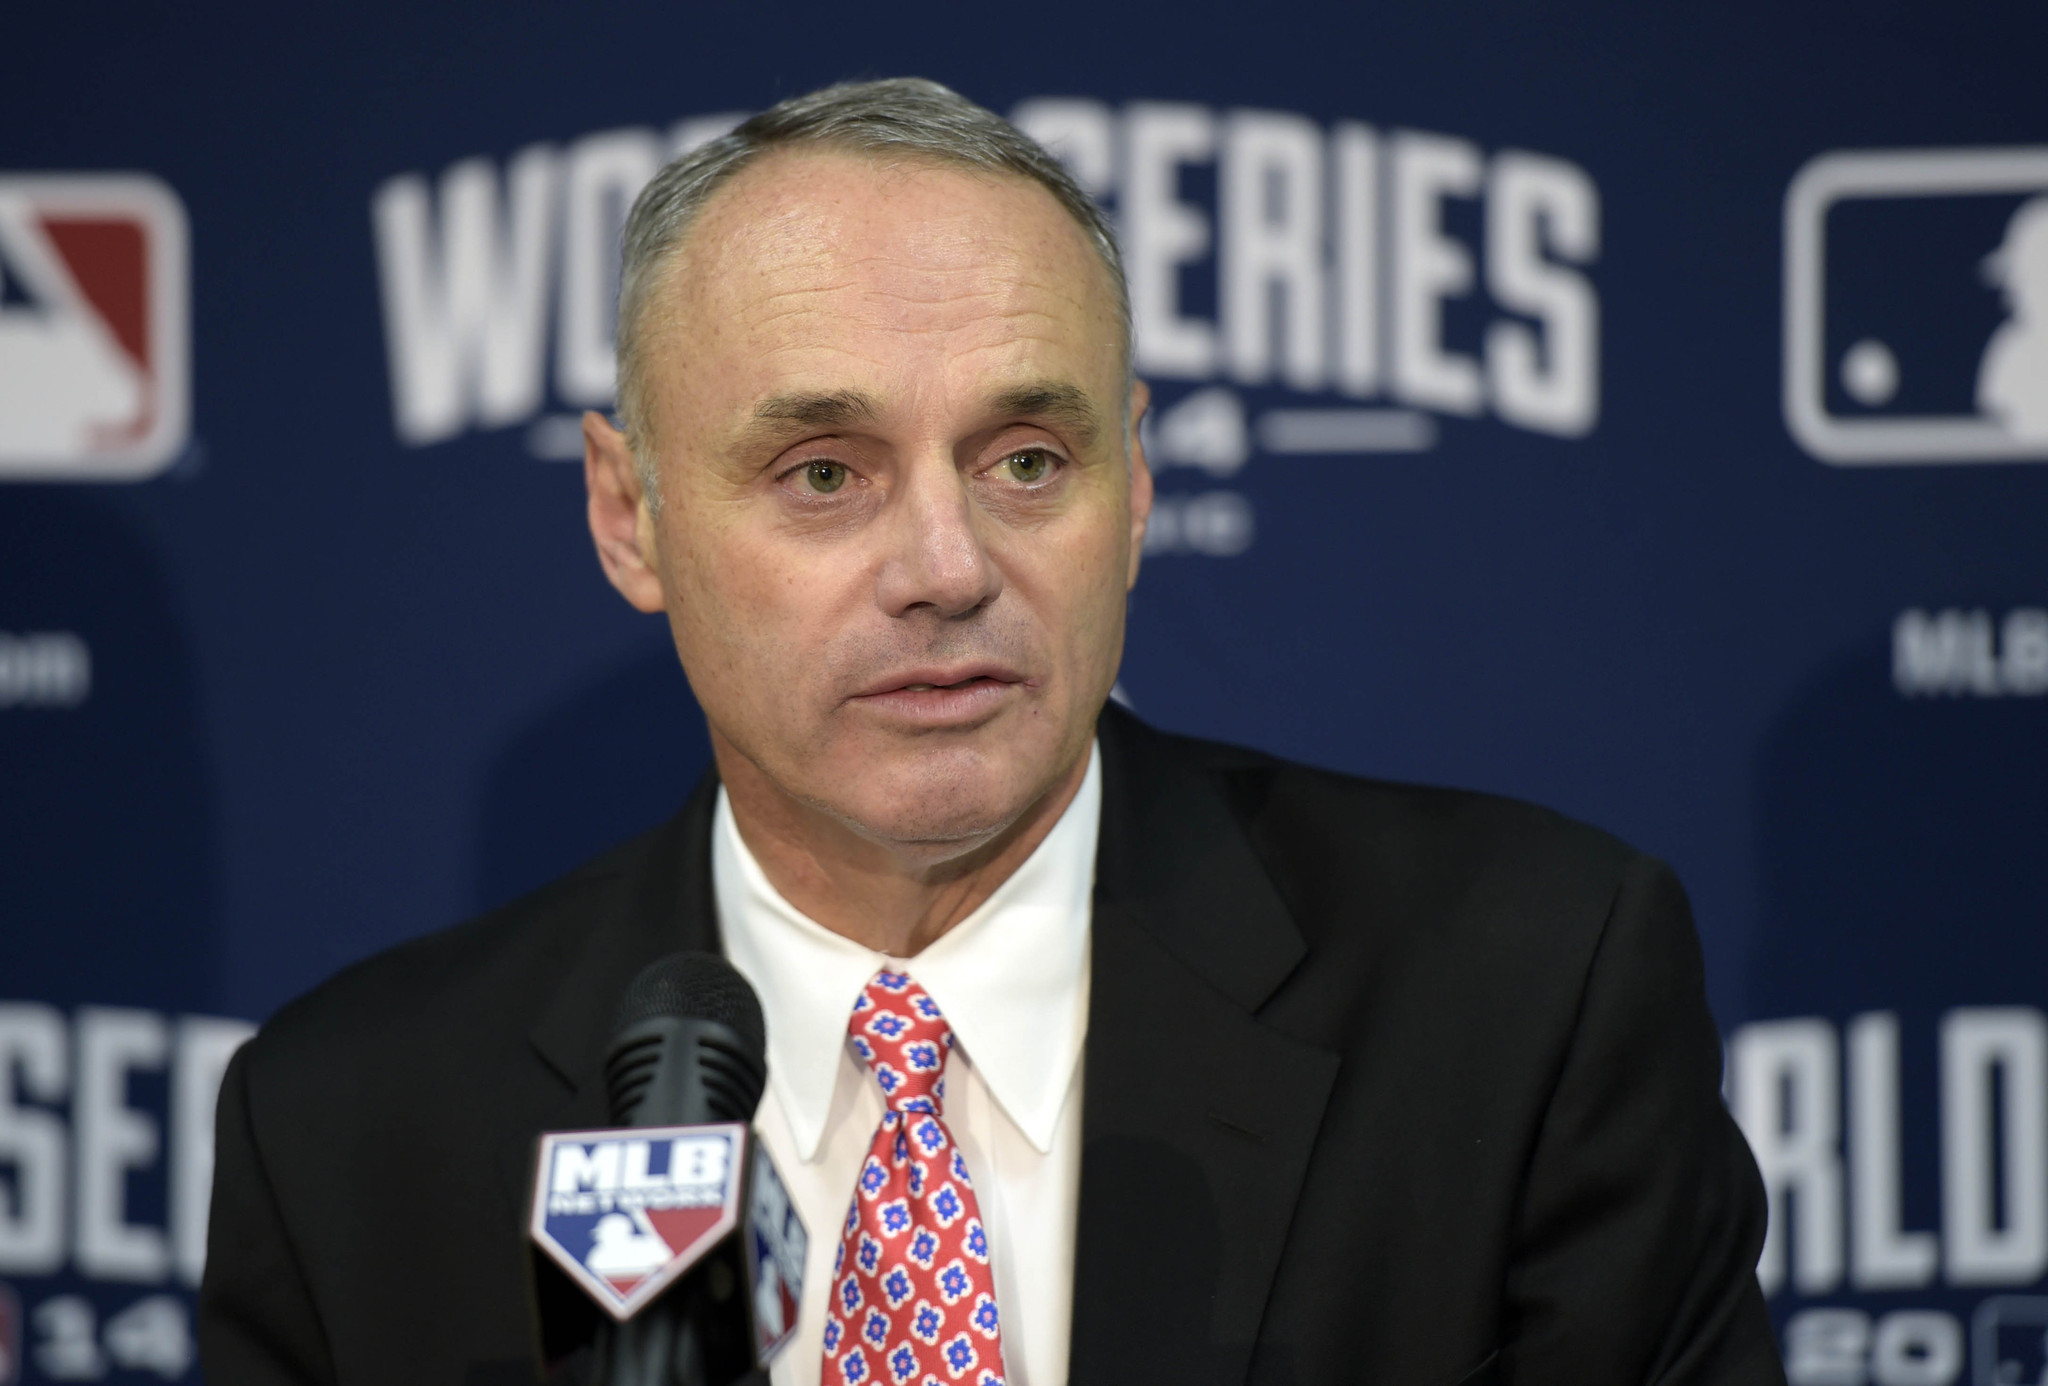 MLB will try to implement a policy on domestic violence